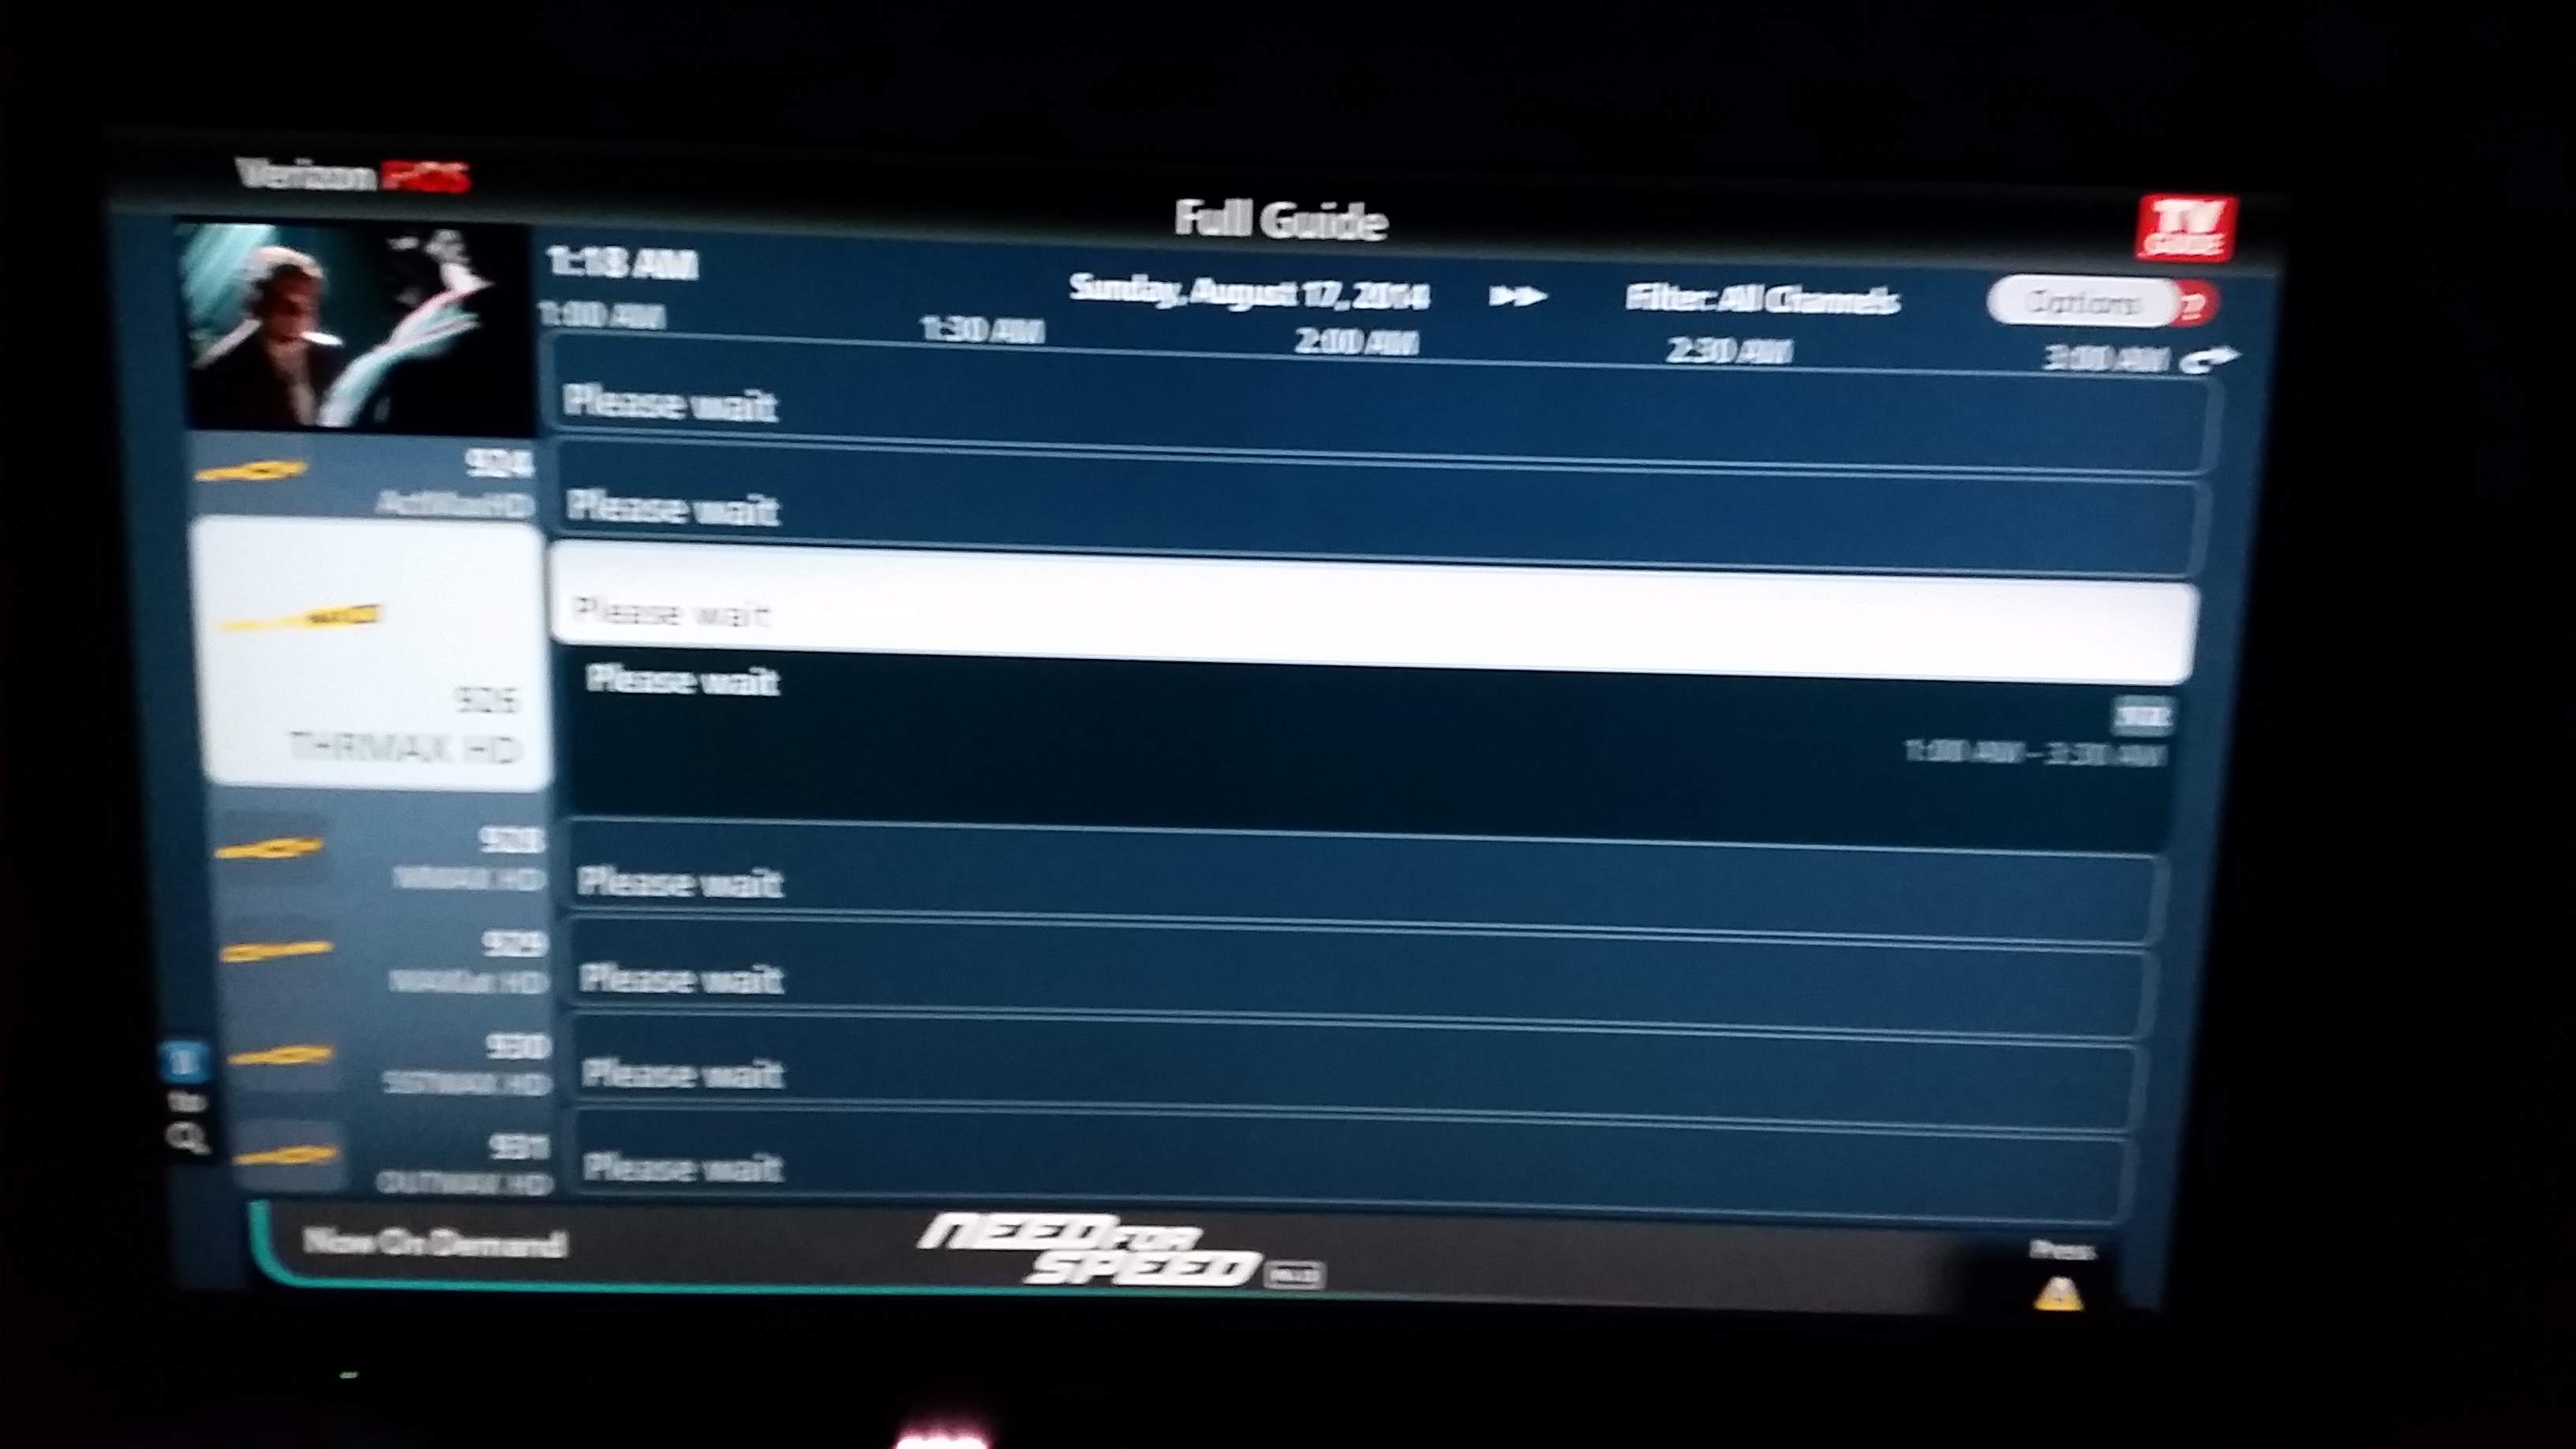 guide help please- everything says please wait - verizon fios